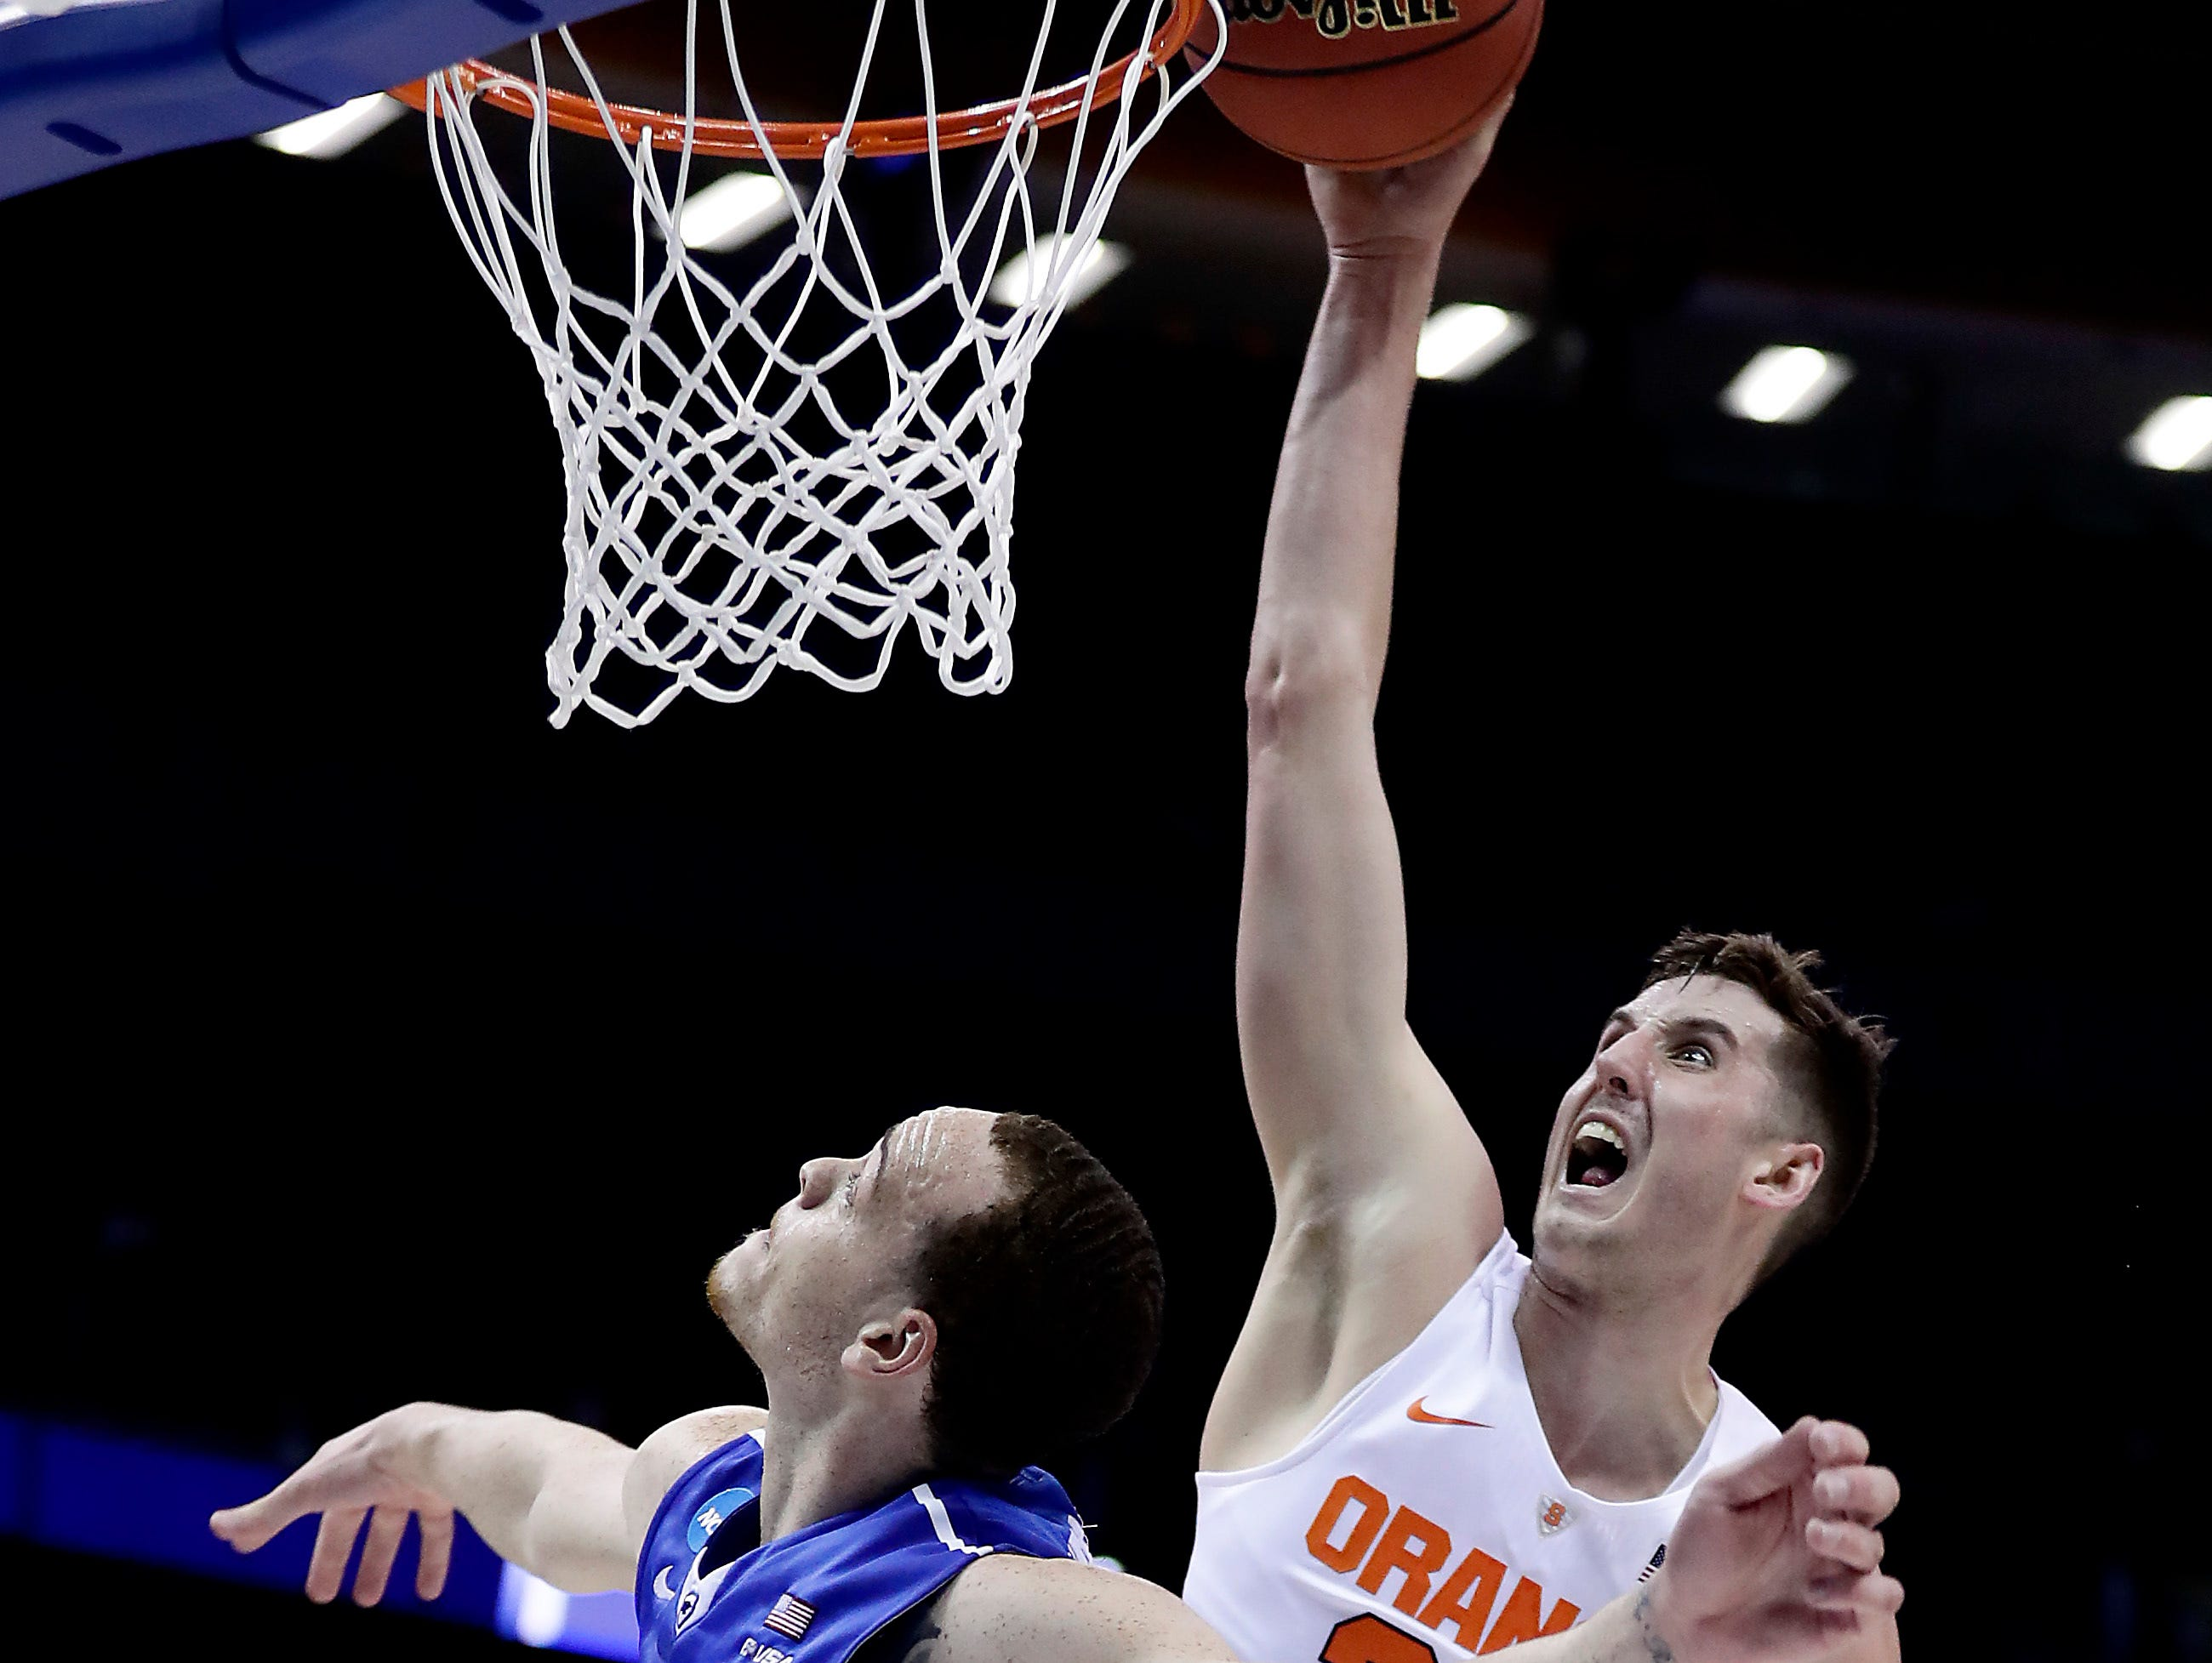 Syracuse's Tyler Lydon, an Elizaville native, dunks over the head of Middle Tennessee's Reggie Upshaw at Scottrade Center in St. Louis, Missouri Sunday.